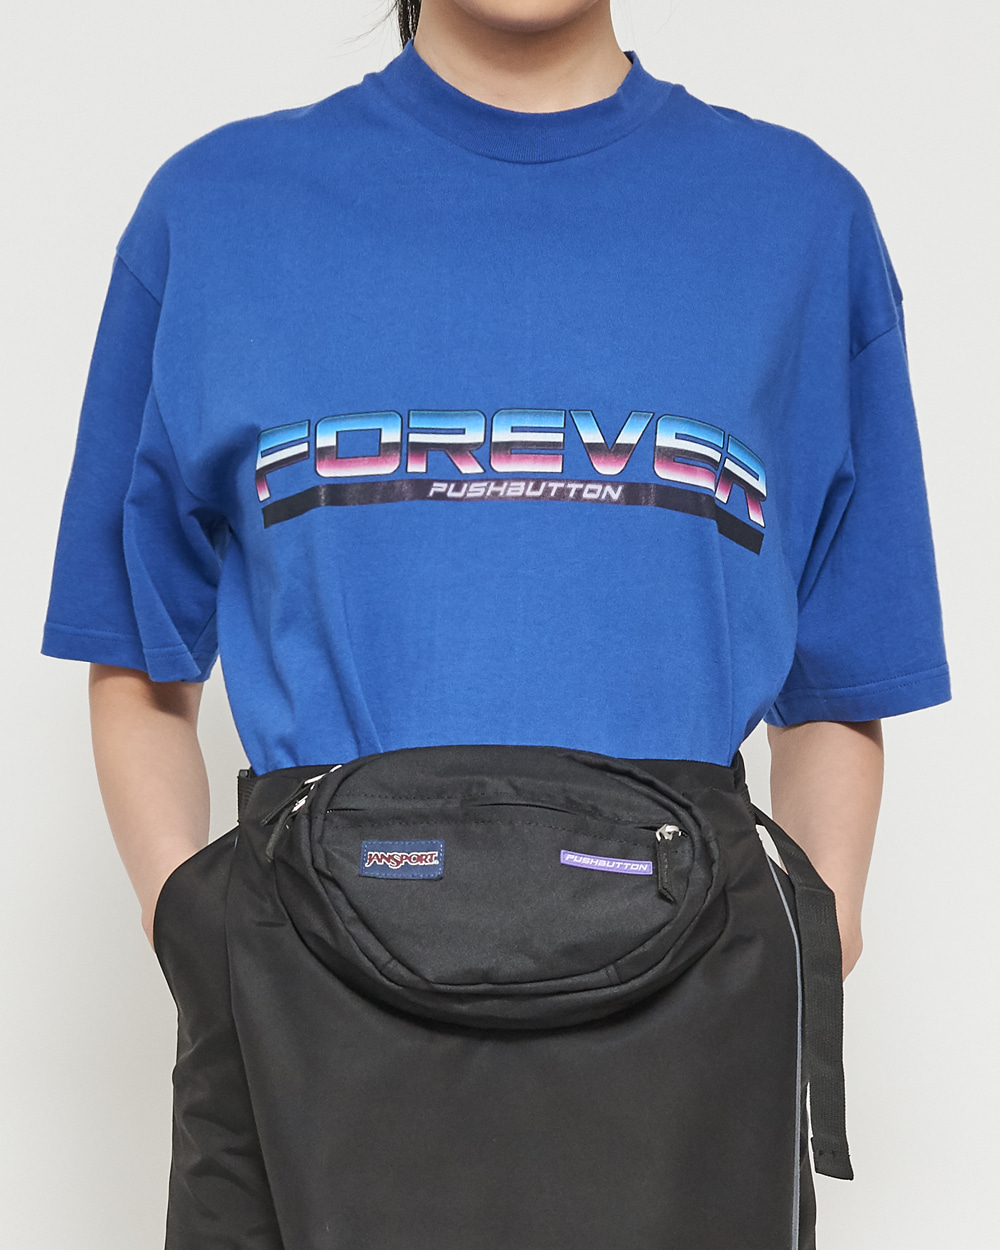 FOREVER PUSHBUTTON T-SHIRT